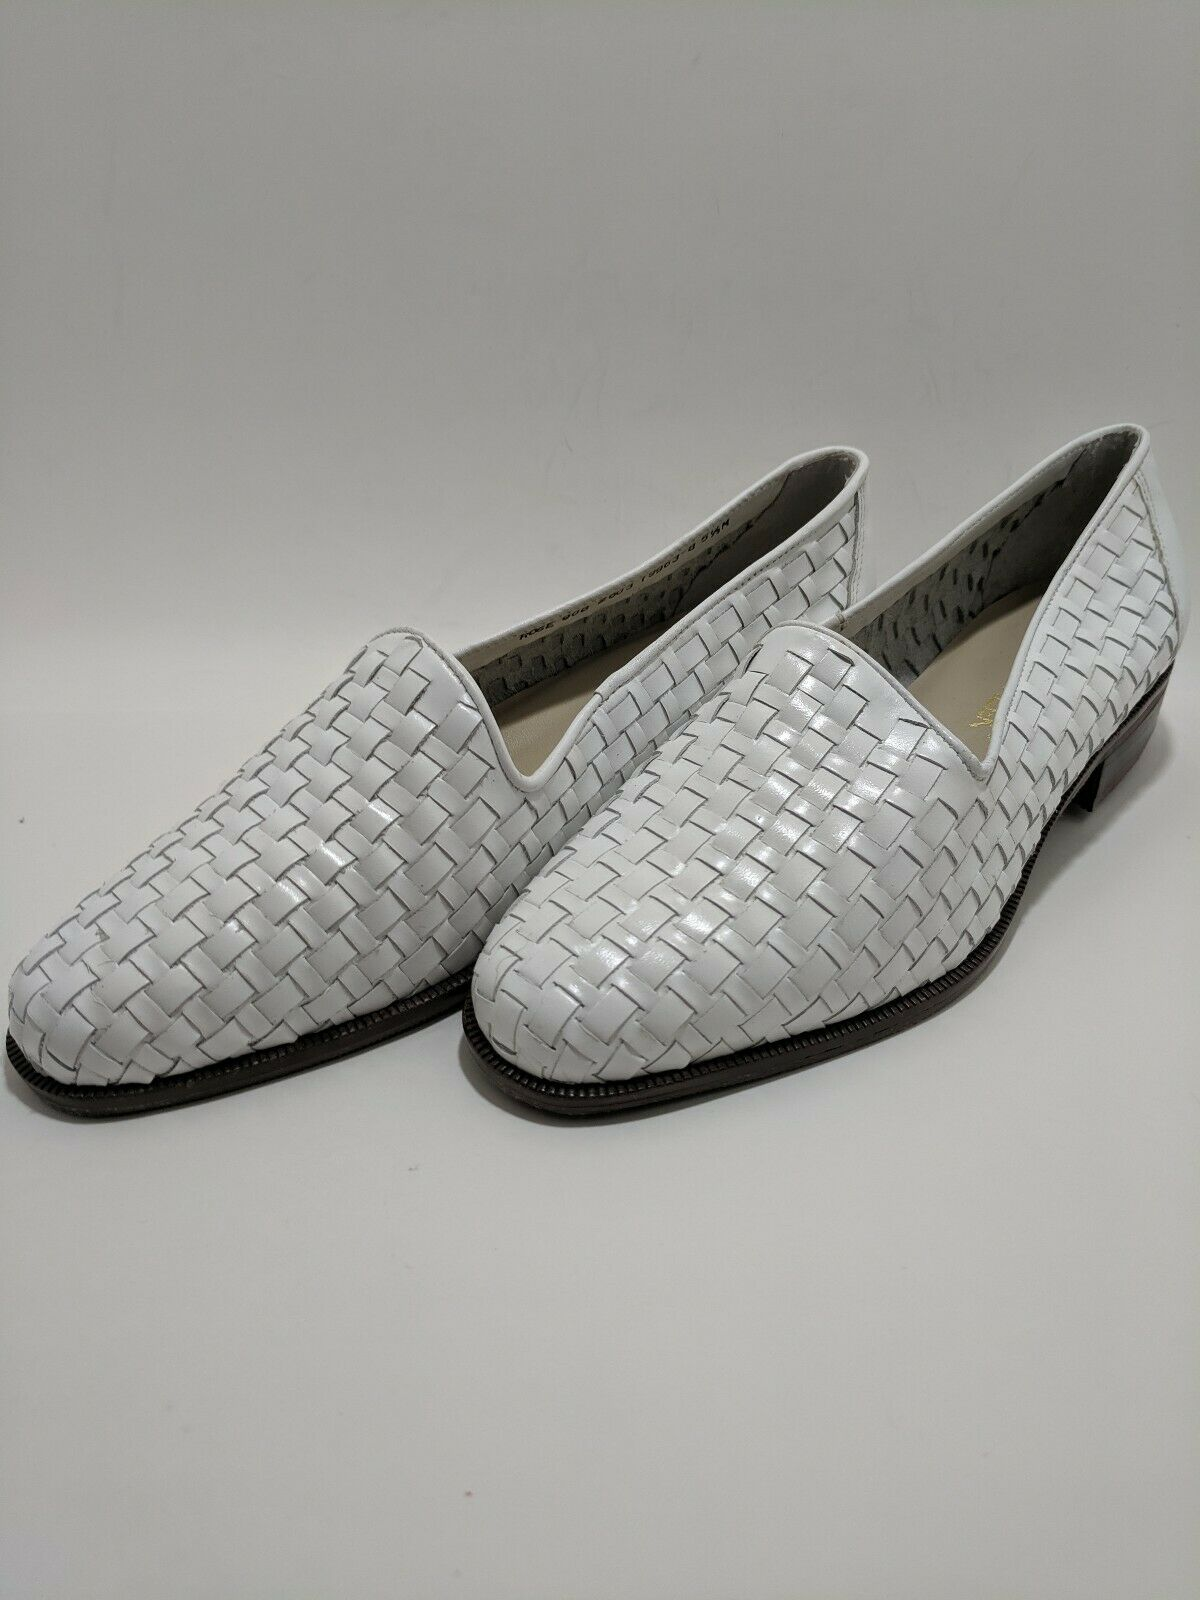 Cabin Creek Rose New Women's Sz 5.5 Comfort Shoes White Leather Loafers NWOB